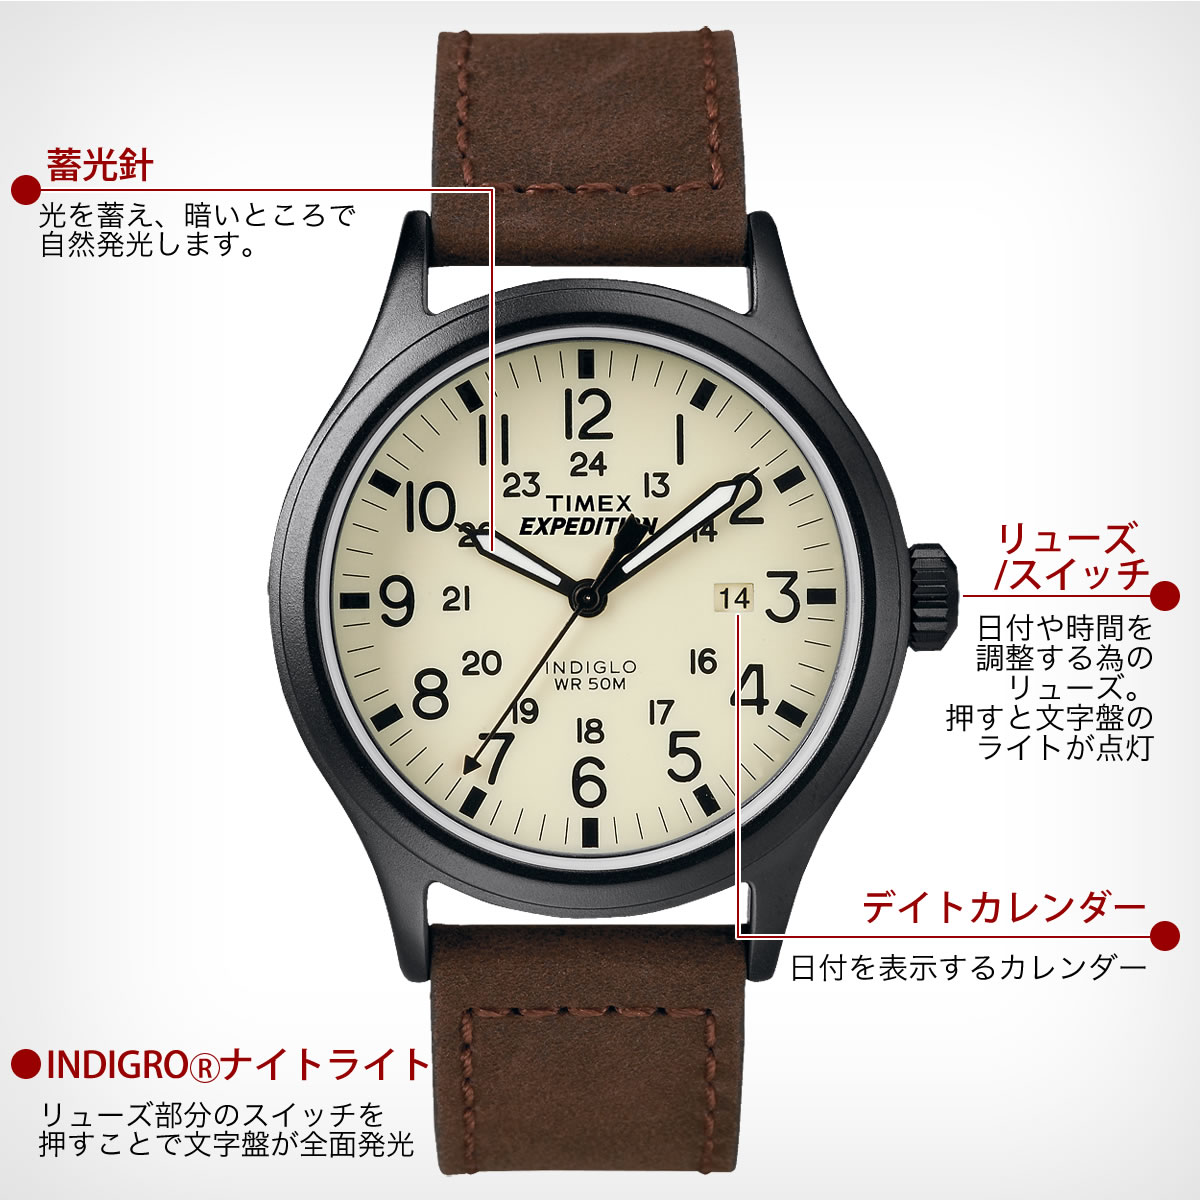 TIMEX Expedition  SCOUT クリーム×ブラウン 40mm T49963 機能詳細